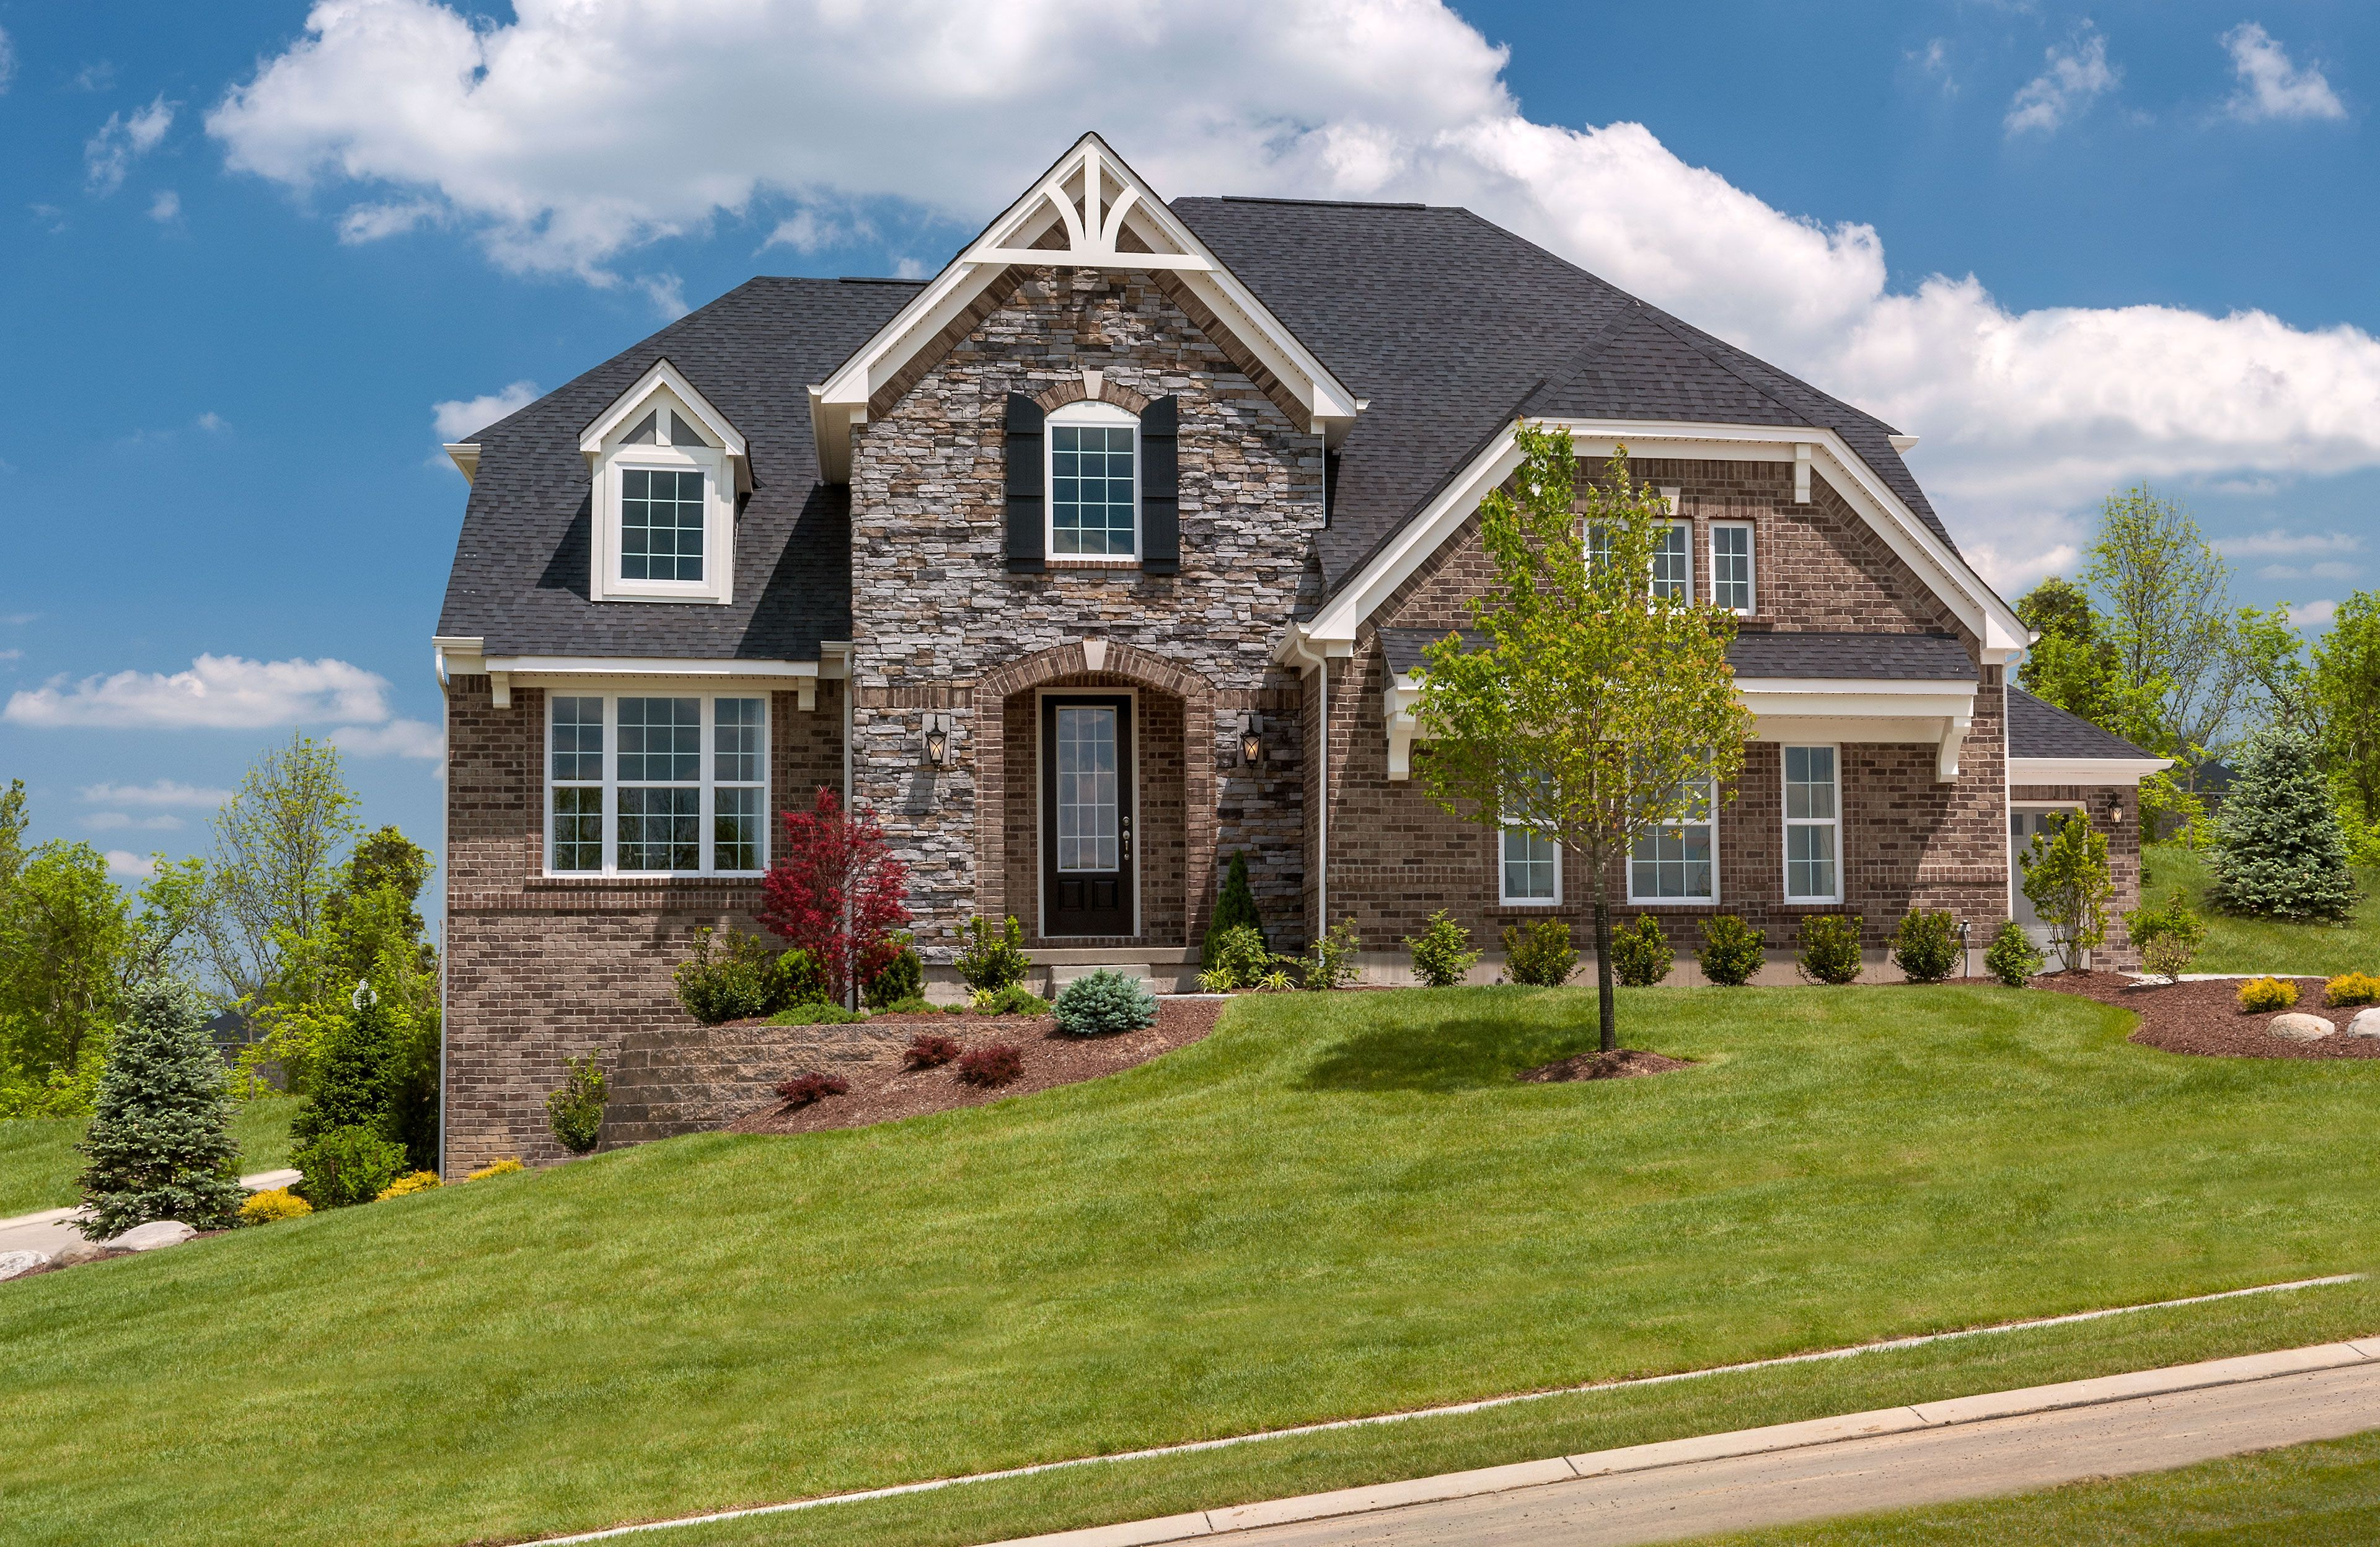 thornwilde in hebron ky new homes floor plans by drees homes greenshire commons